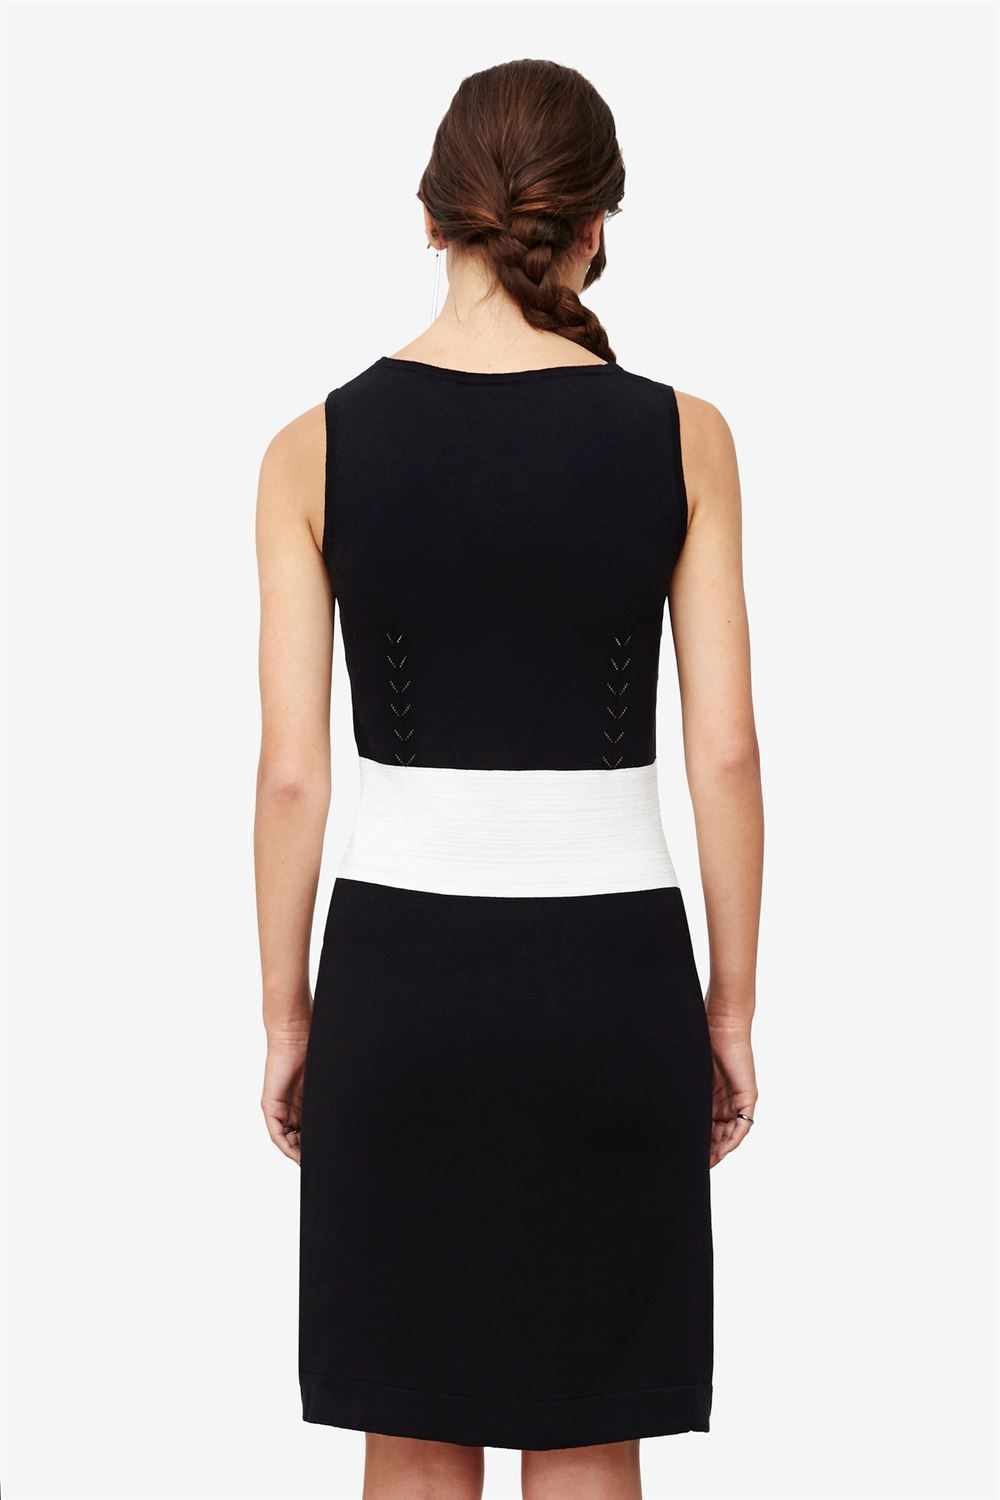 Black nursing dress with slim white waistline - rear view